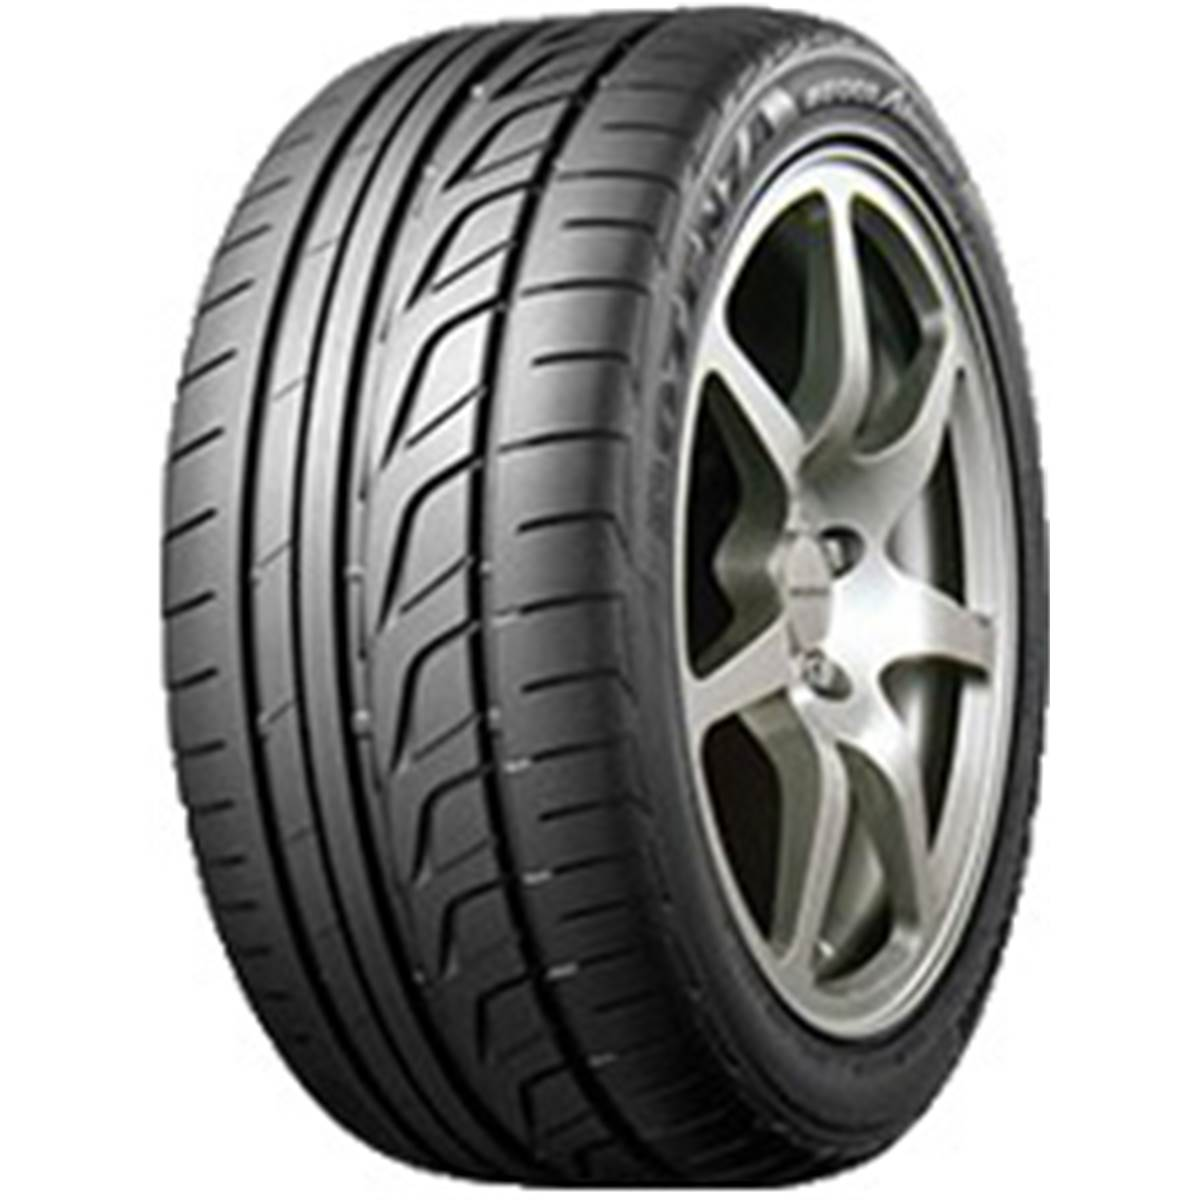 Pneu Bridgestone 205/55R15 88W Potenza Adrenalin Re002